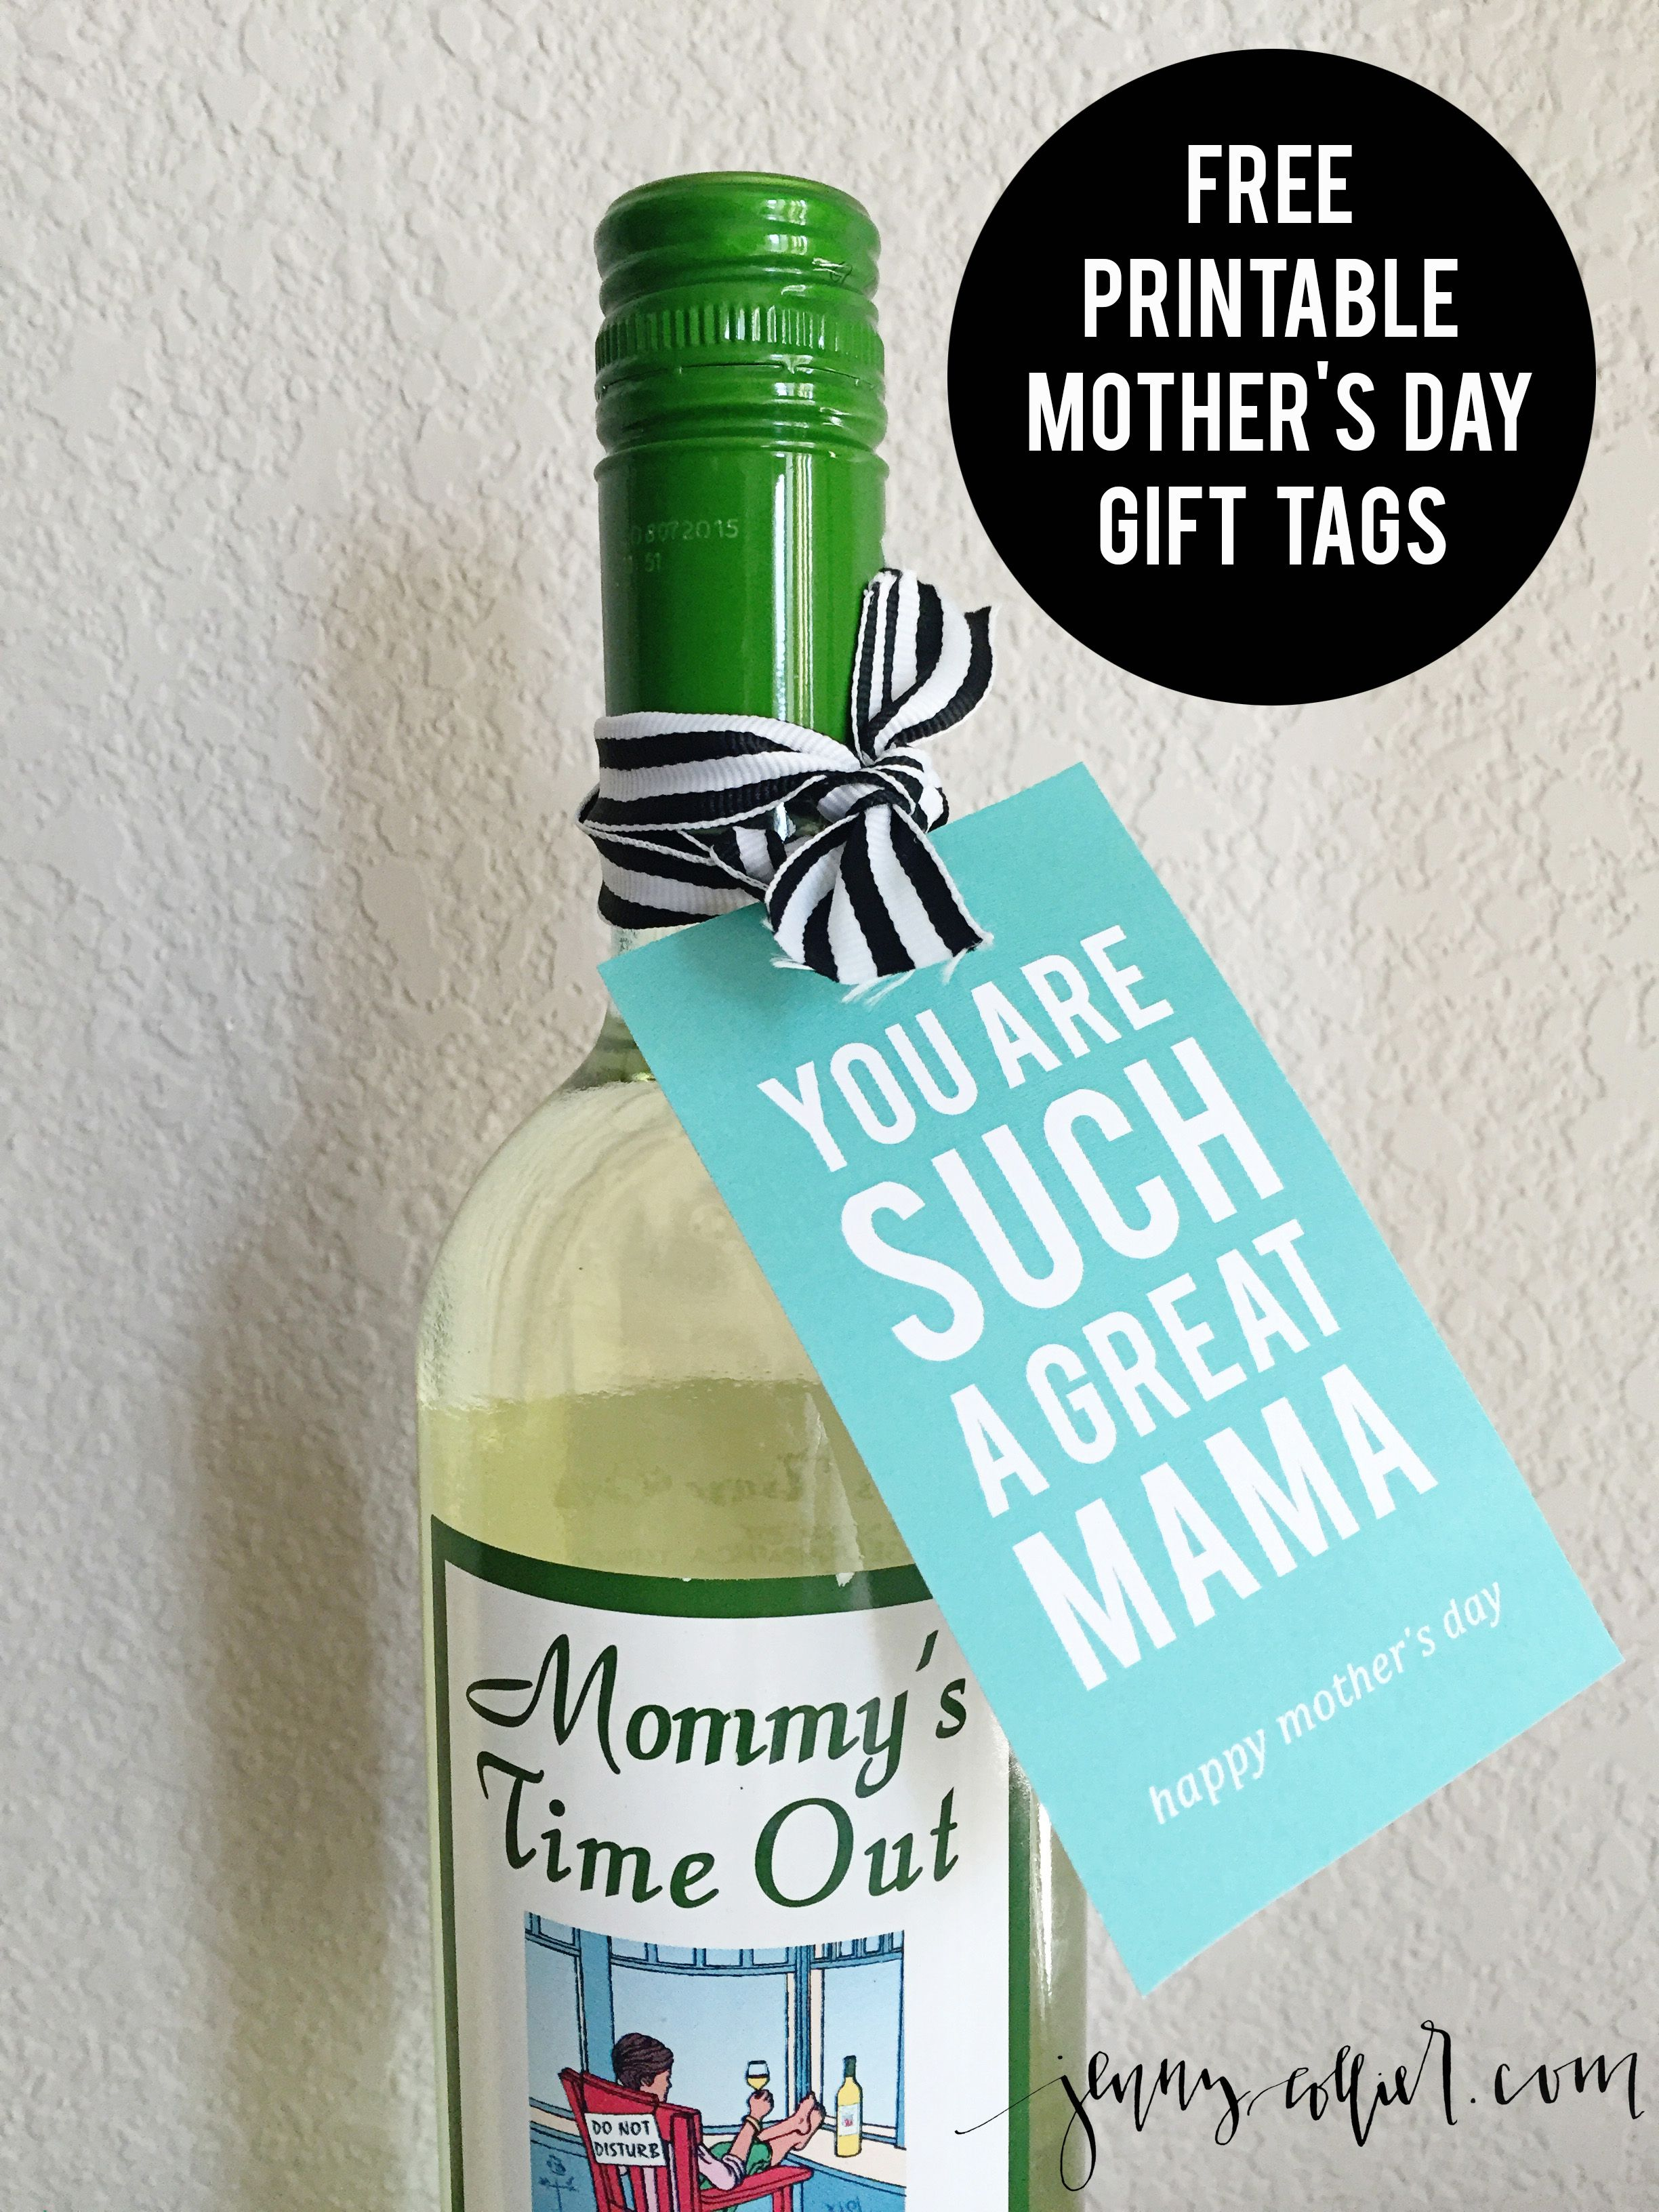 mother's day gift tags | gift, free printables and bottle